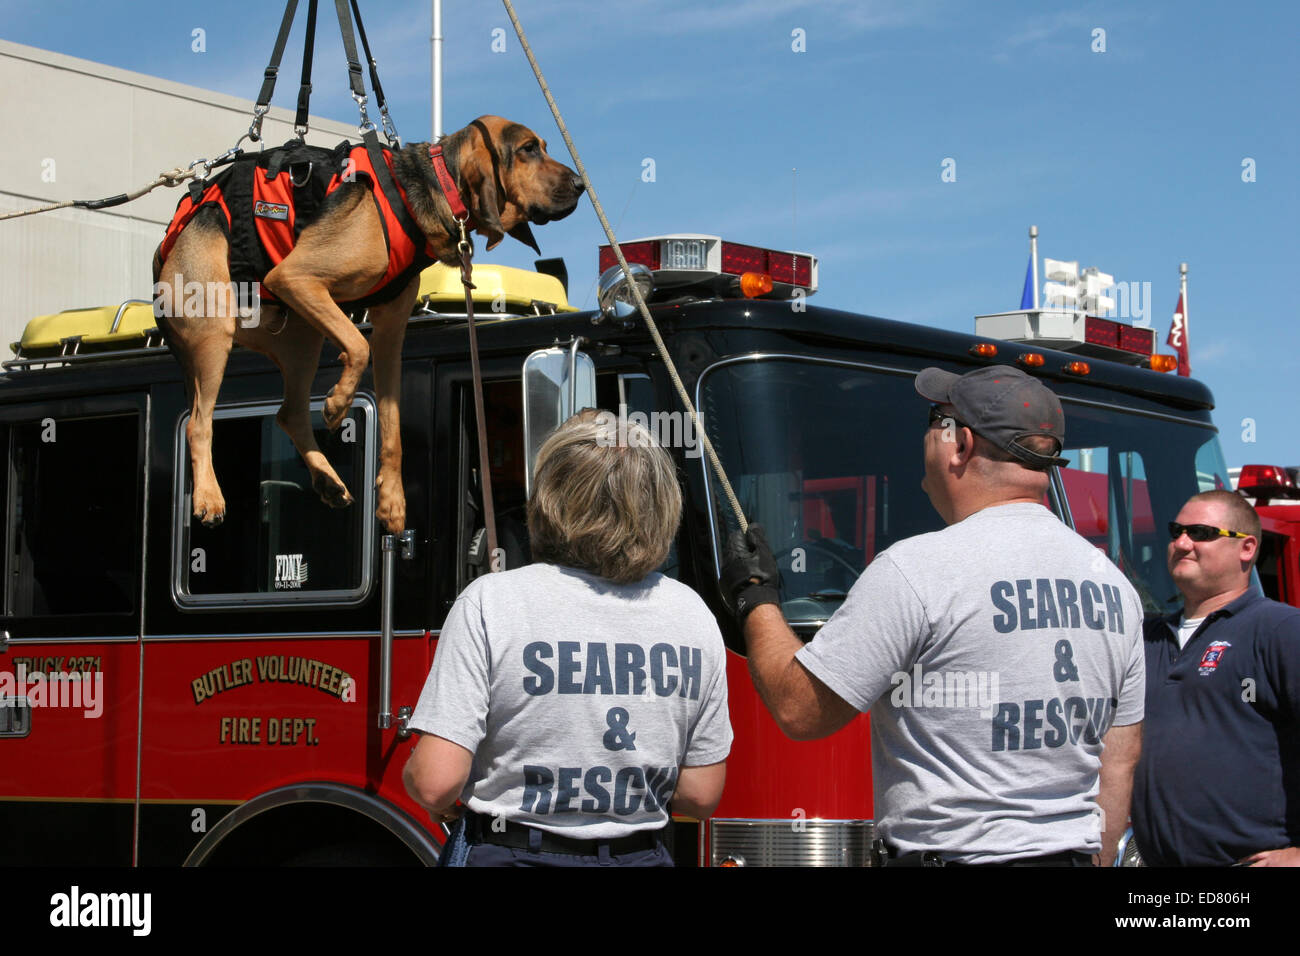 Search and Rescue team using an harness to lower a Bloodhound dog - Stock Image